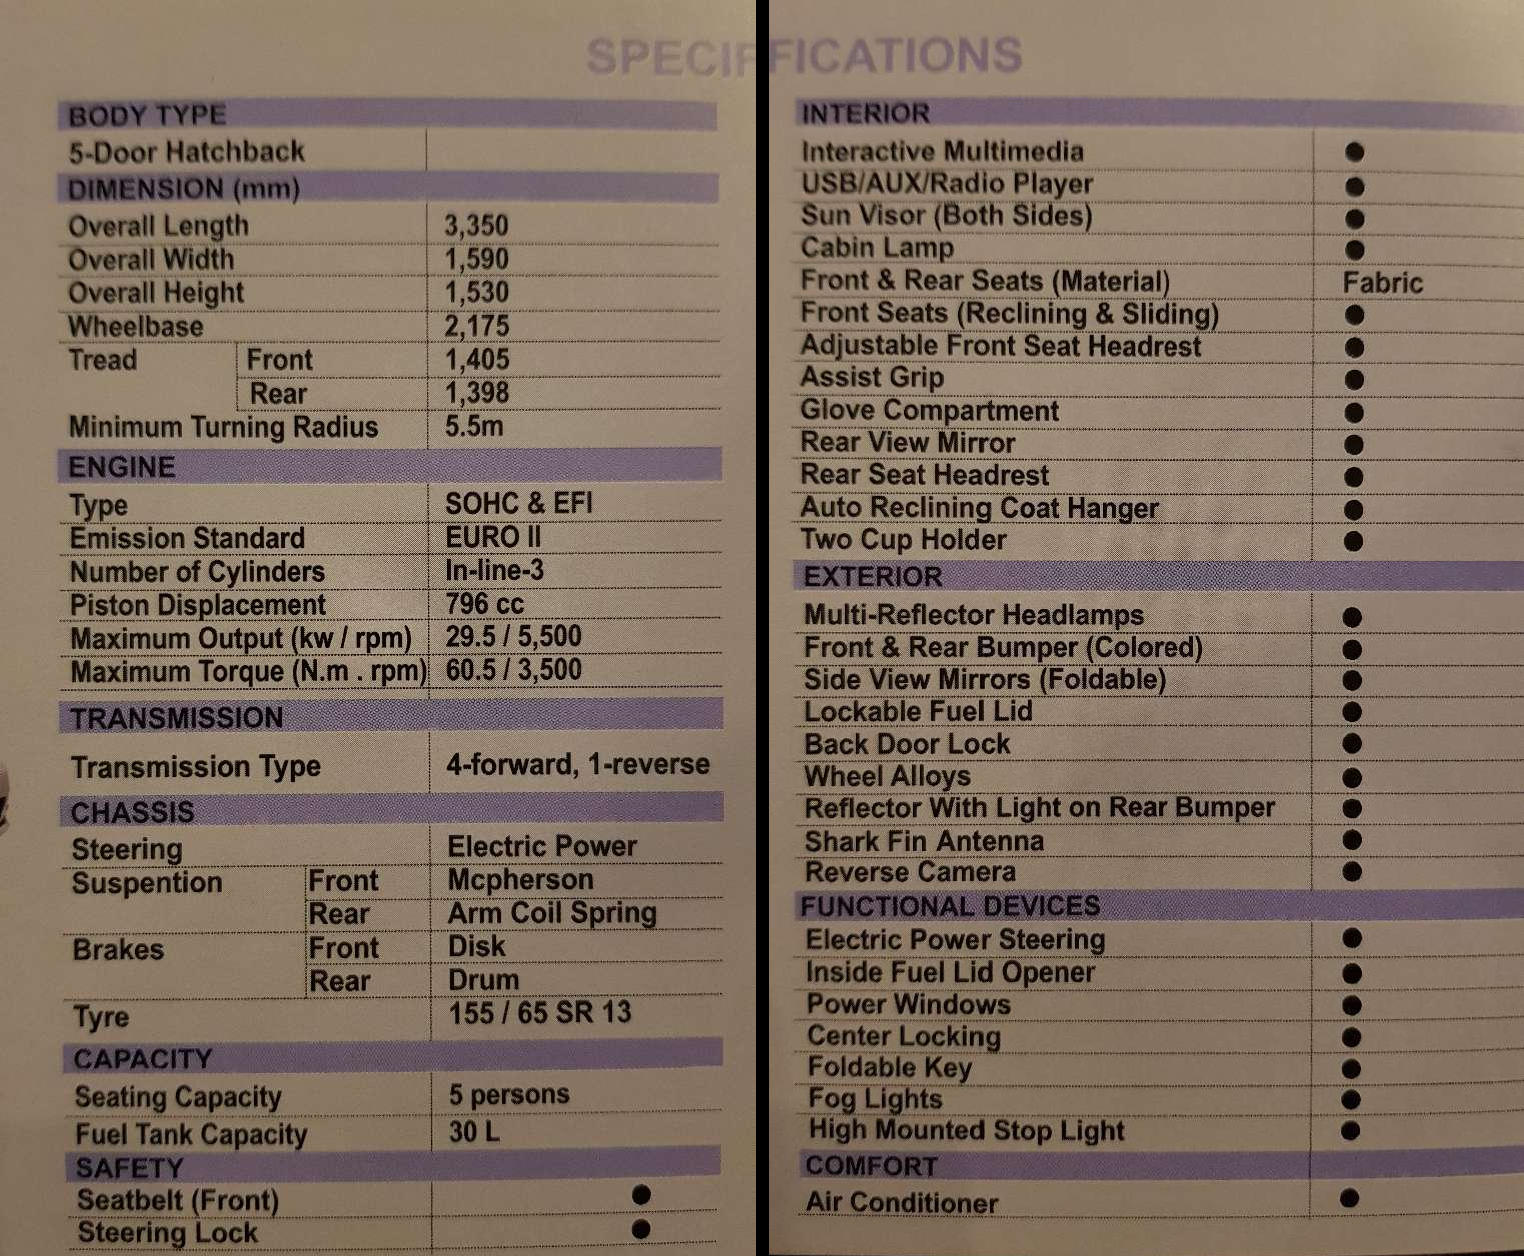 United Auto Bravo Specifications